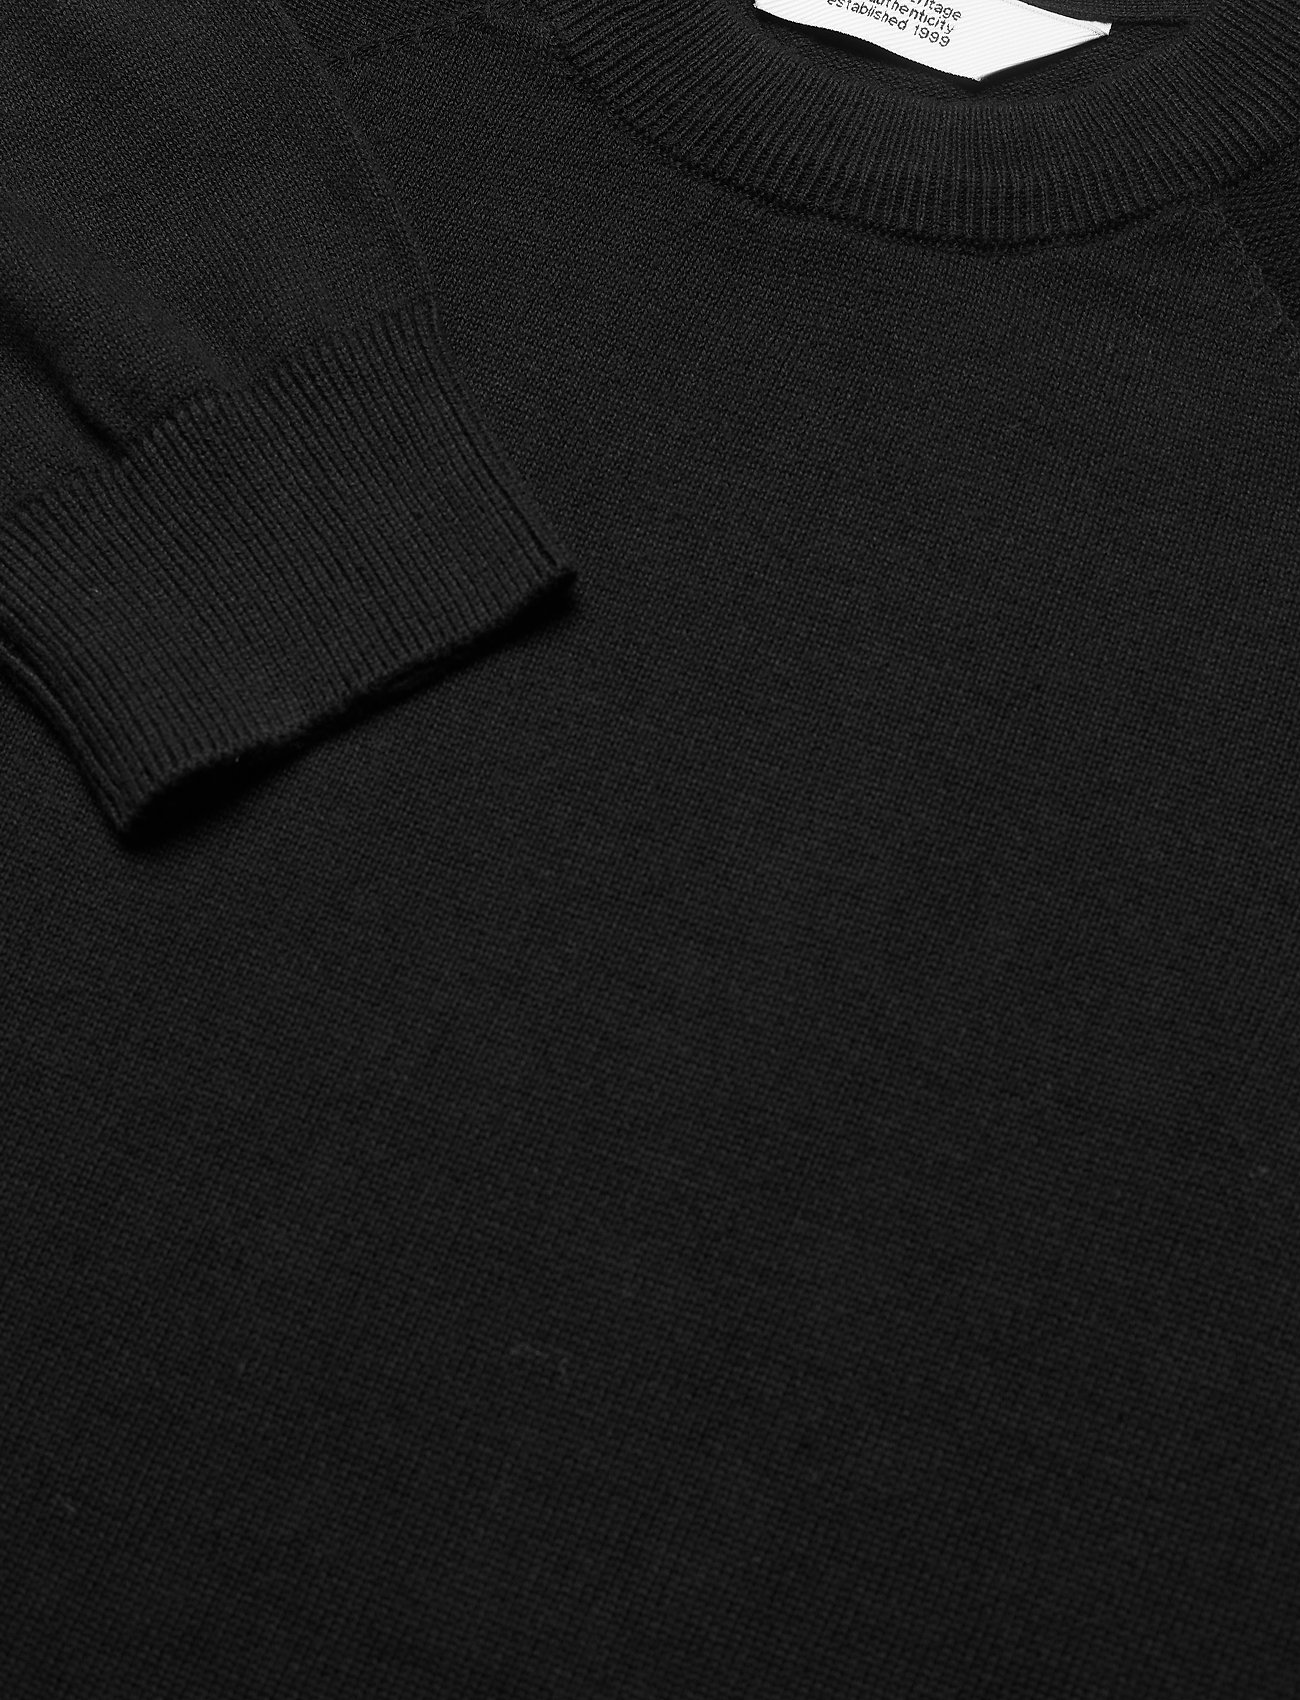 Solid 6202626, Knit - SDLuno O-neck Organ - Strikkevarer BLACK - Menn Klær